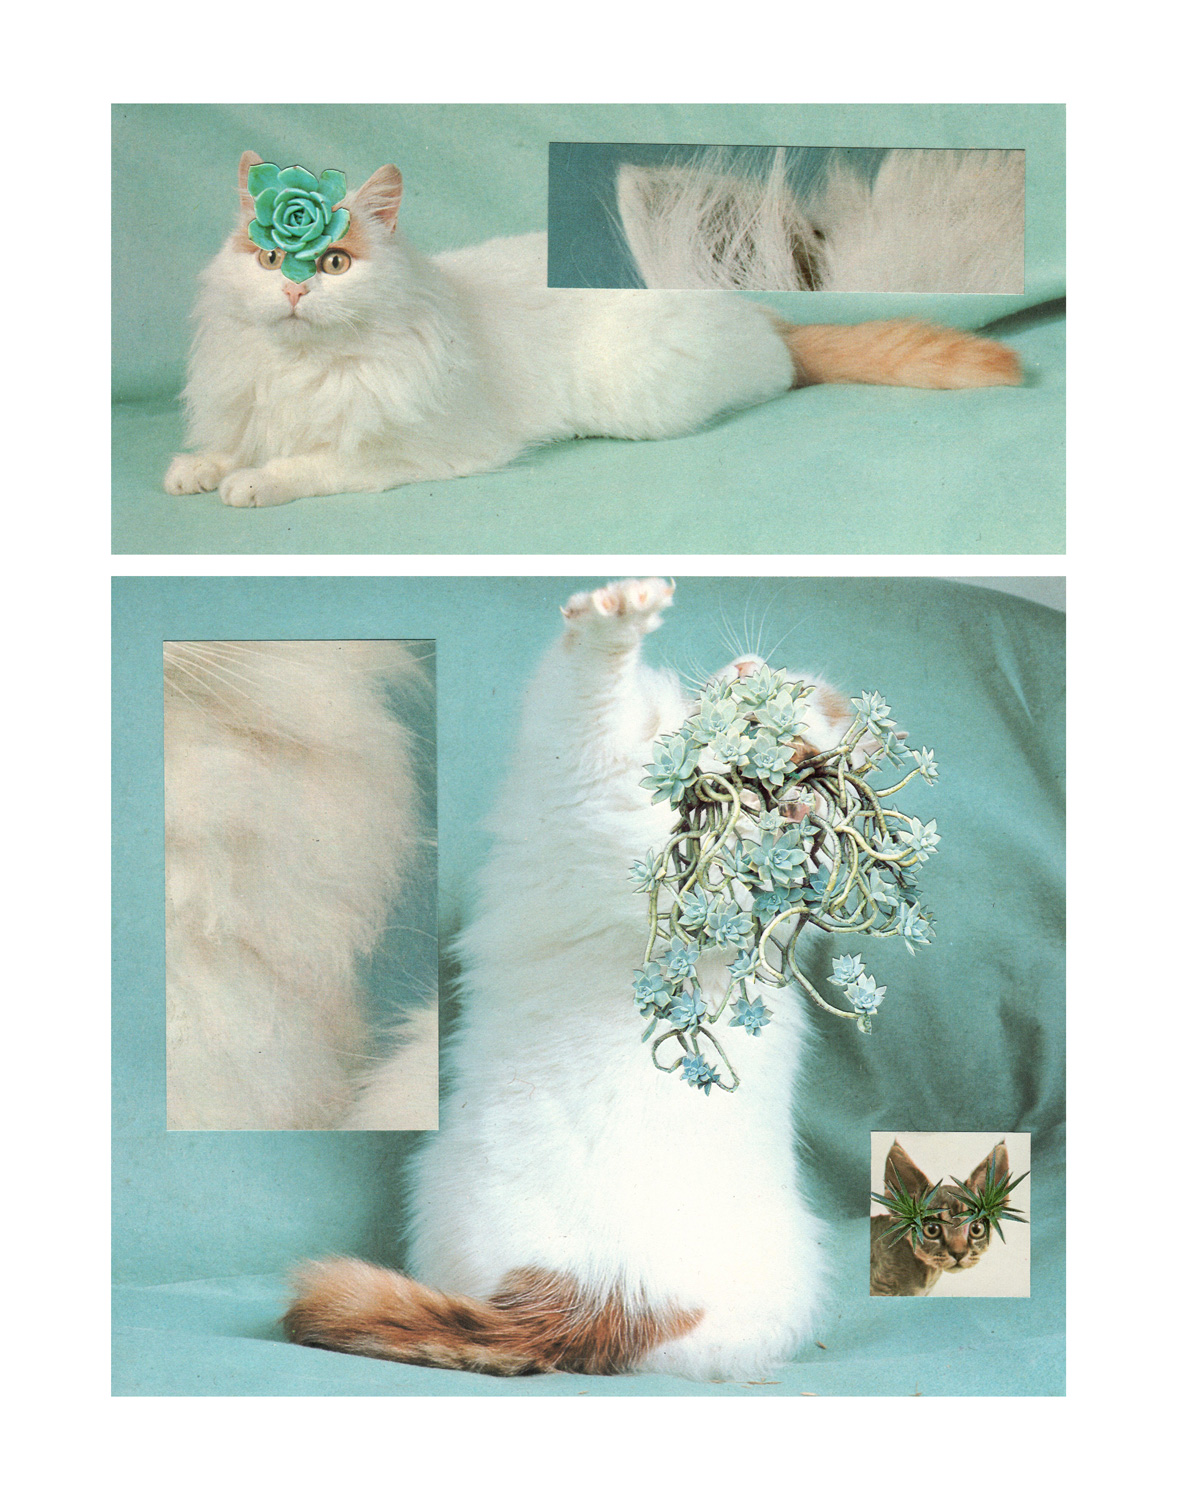 Photomontage - Stephen Eichhorn - Cats & Plants - Fur Party 2014